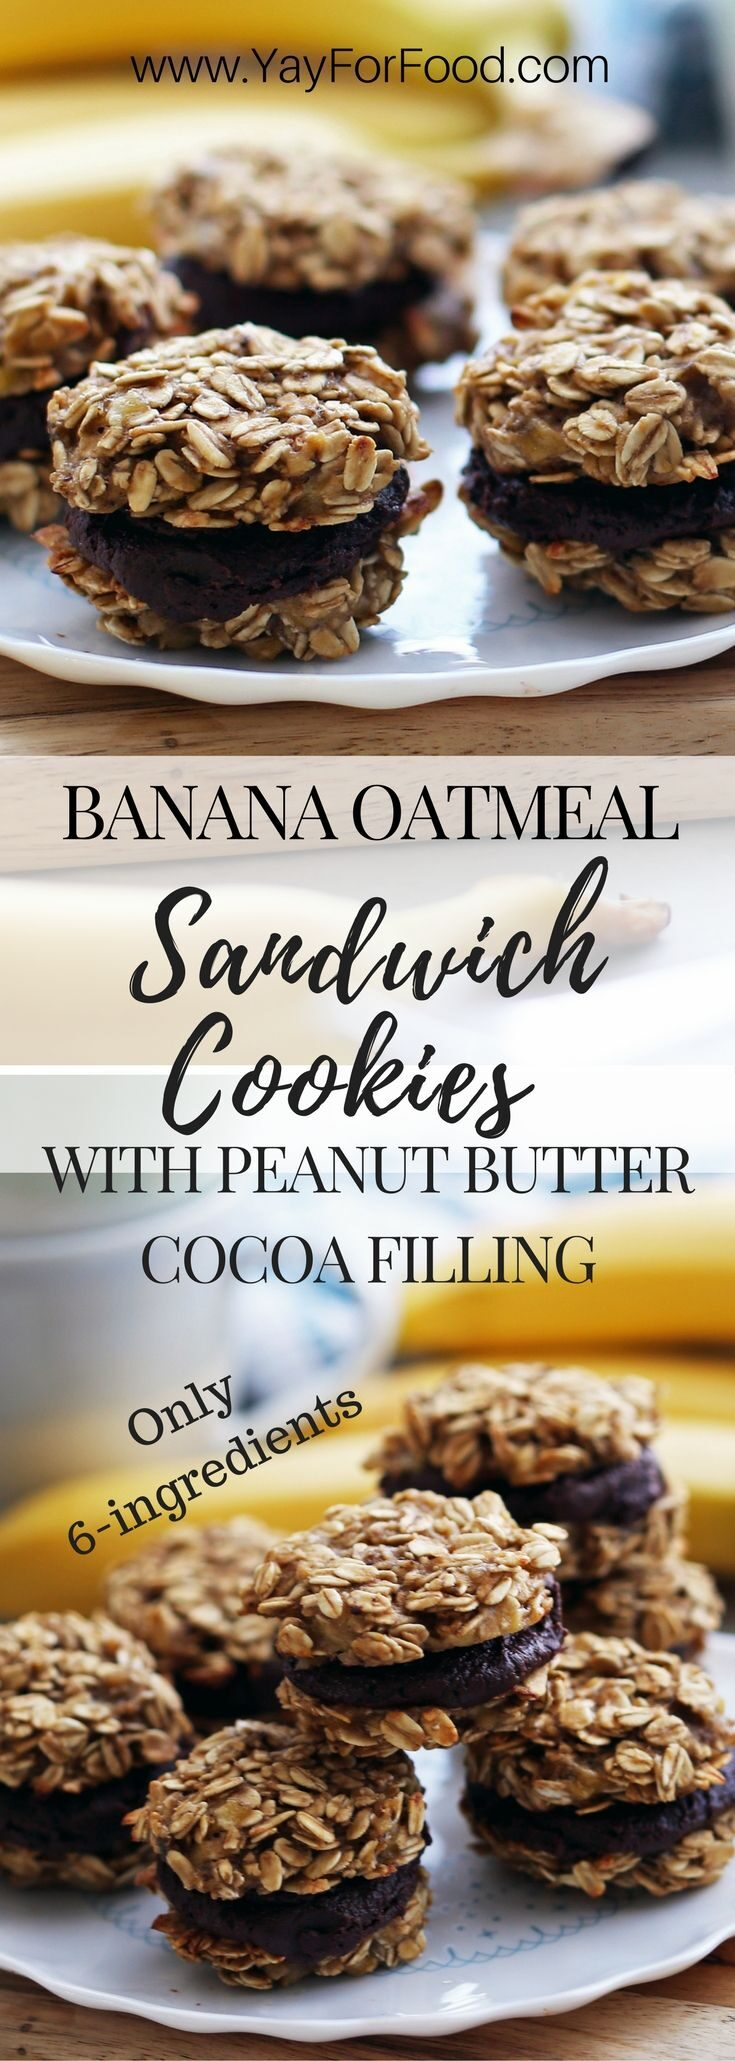 A tasty sweet treat with banana, peanut butter, and chocolate flavours! These sandwich cookies require only six ingredients and takes 30 minutes or less to make.